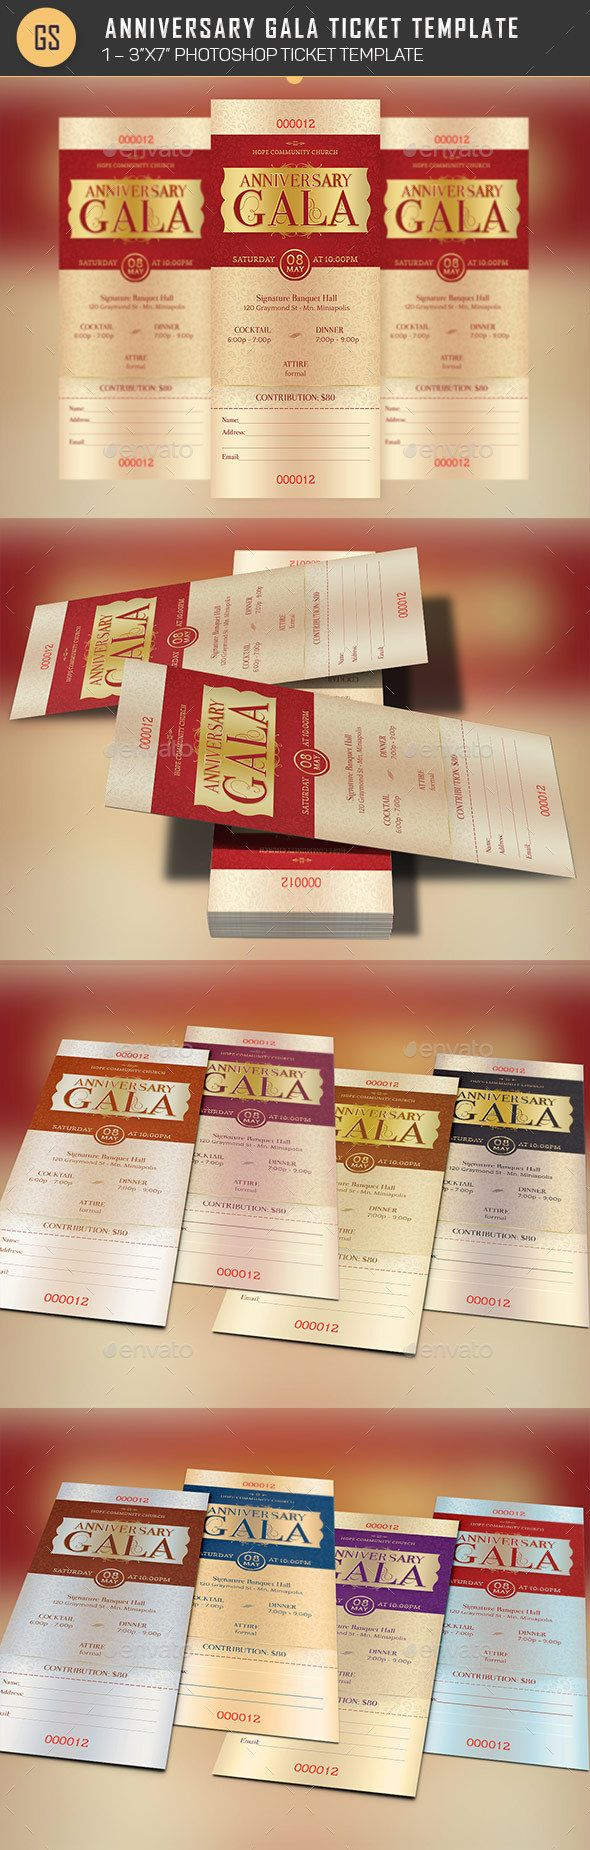 Anniversary Gala Ticket Template Photoshop PSD Red Classical O Available Here